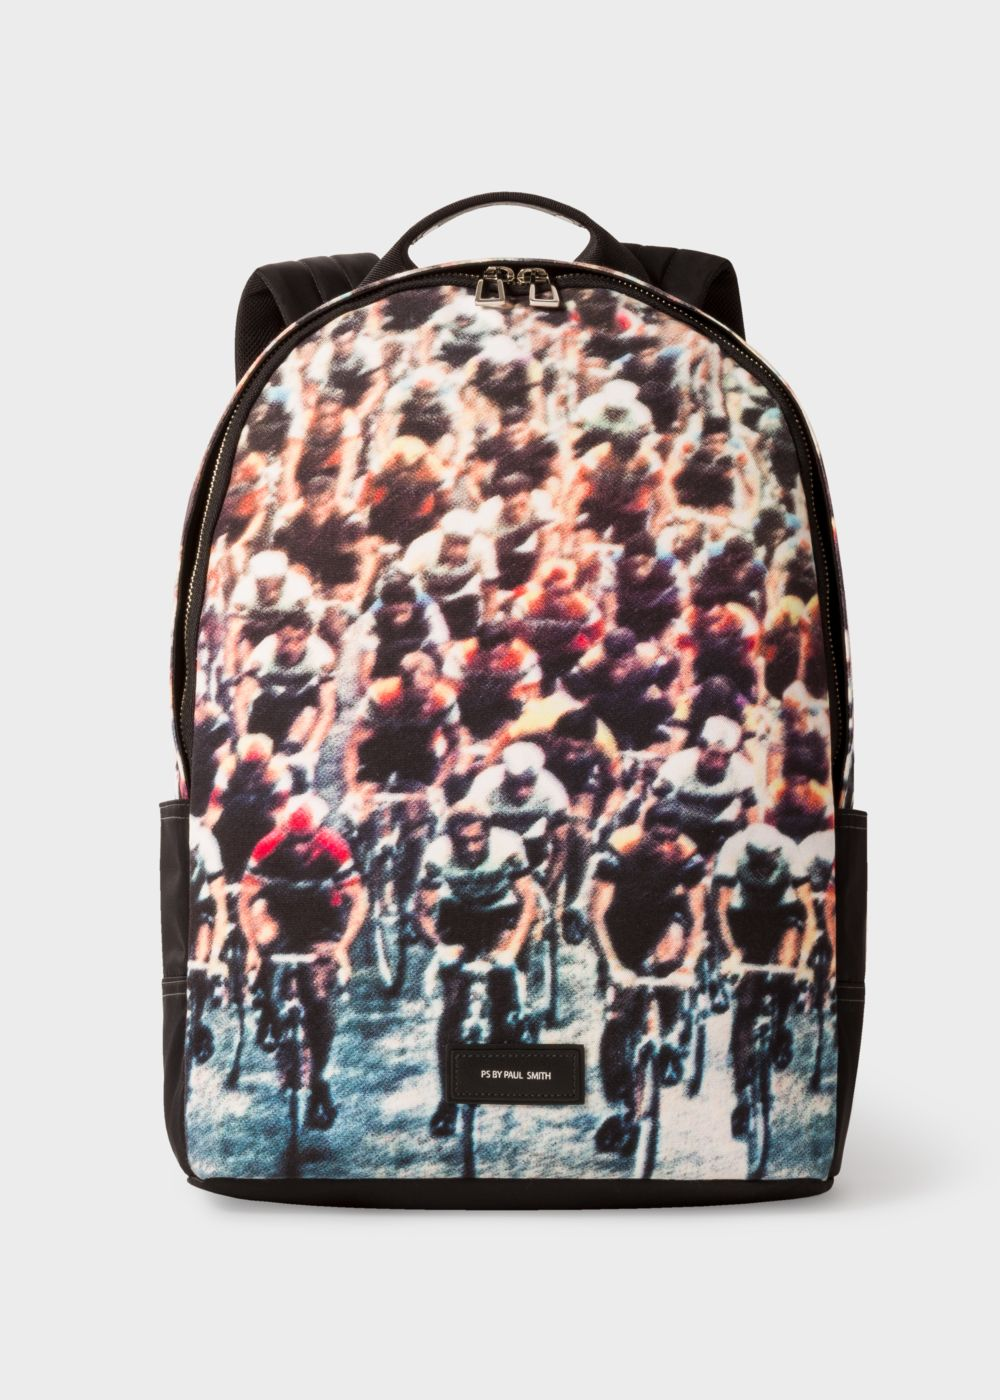 Paul Smith Men's Canvas 'Cycling' Print Backpack